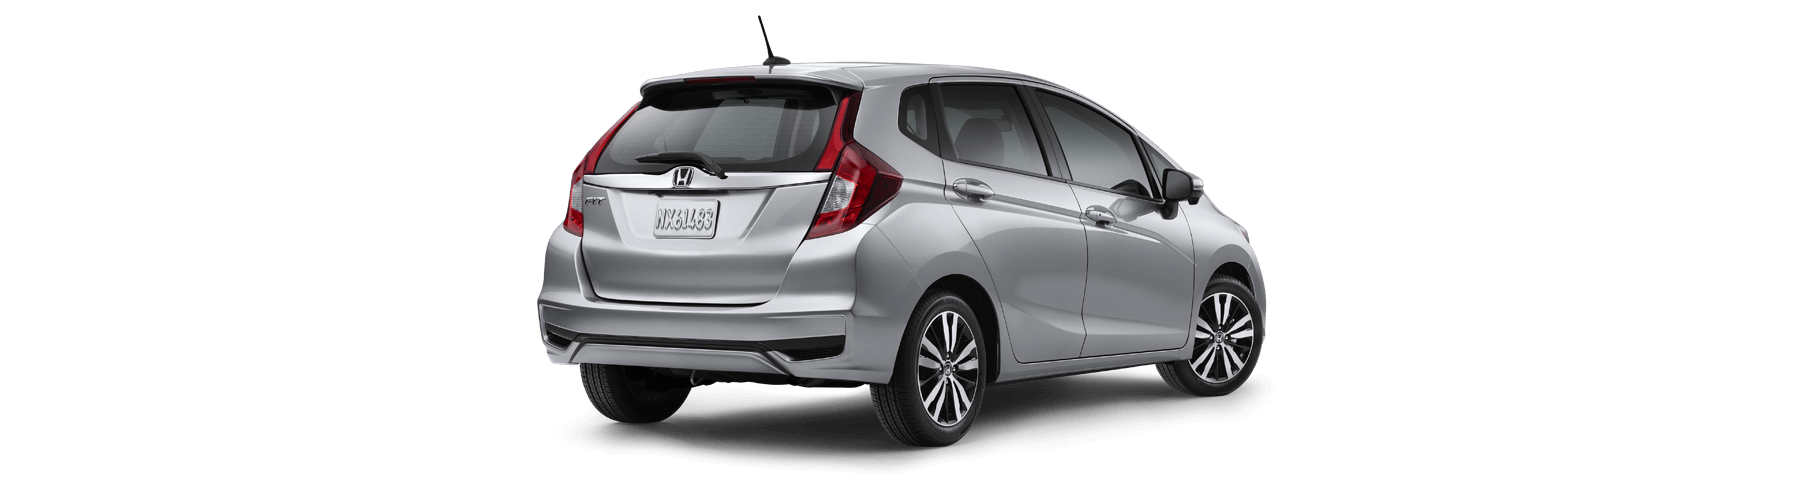 2019 Honda Fit Rear Angle